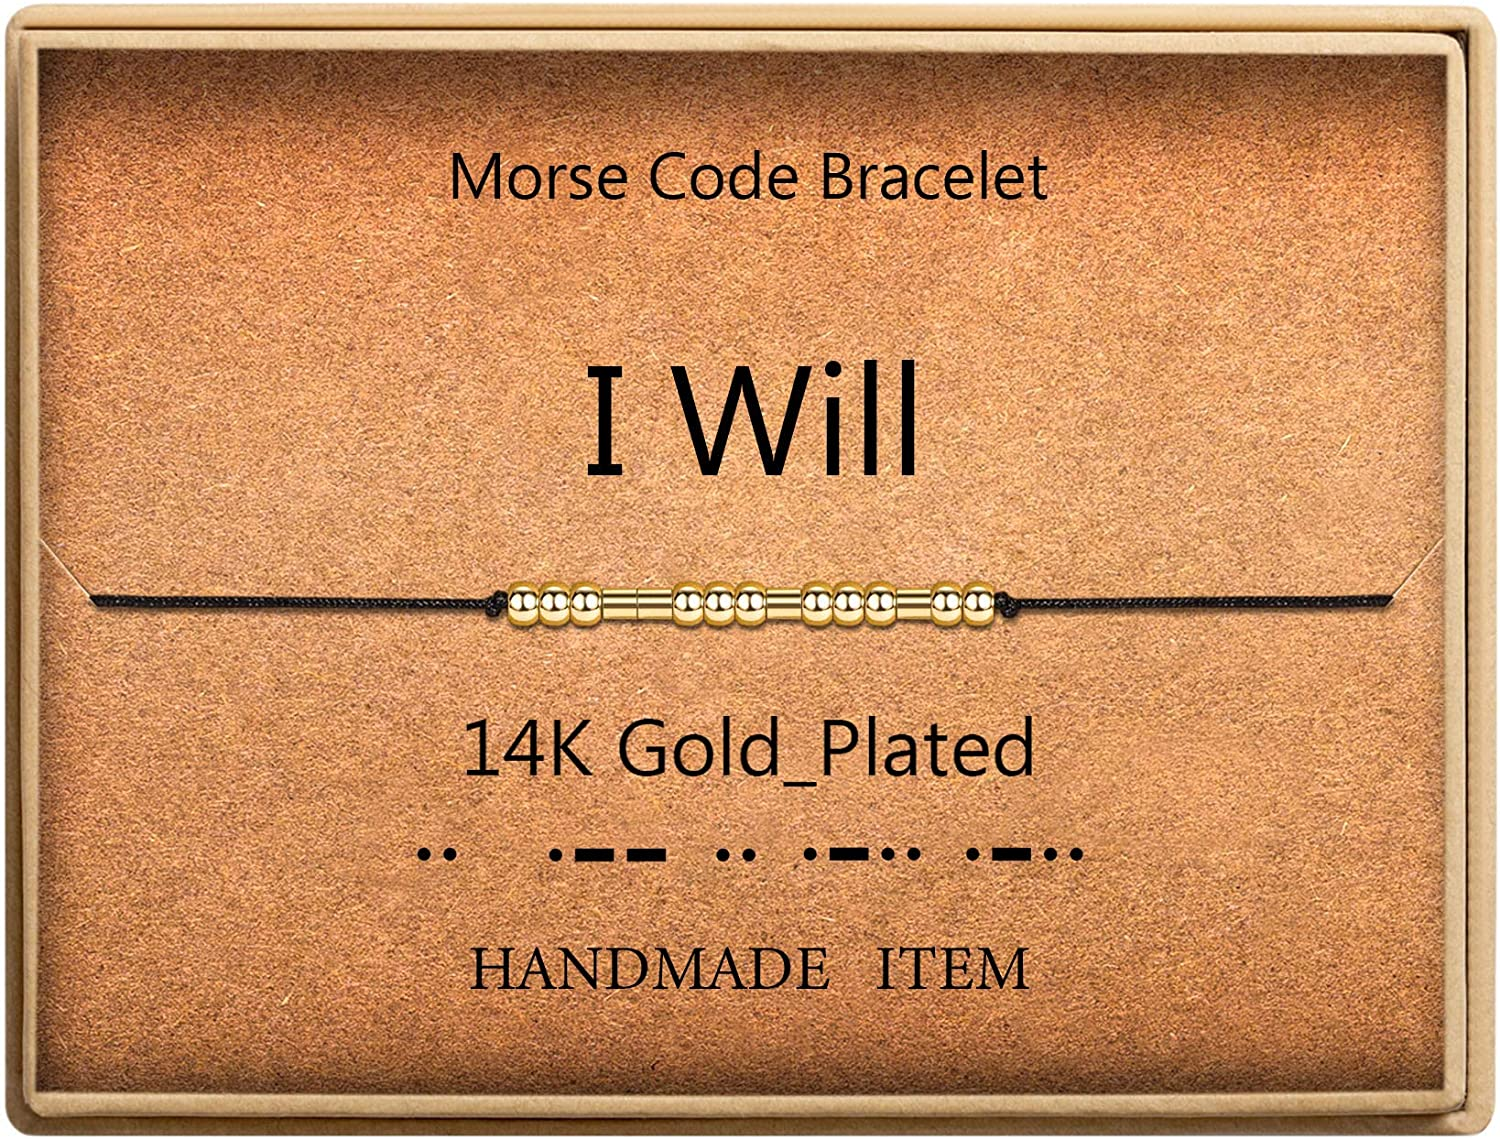 I Will Morse Code Bracelet Max 52% OFF 14k Gold Fr Silk Plated Beads on Cord Al sold out.